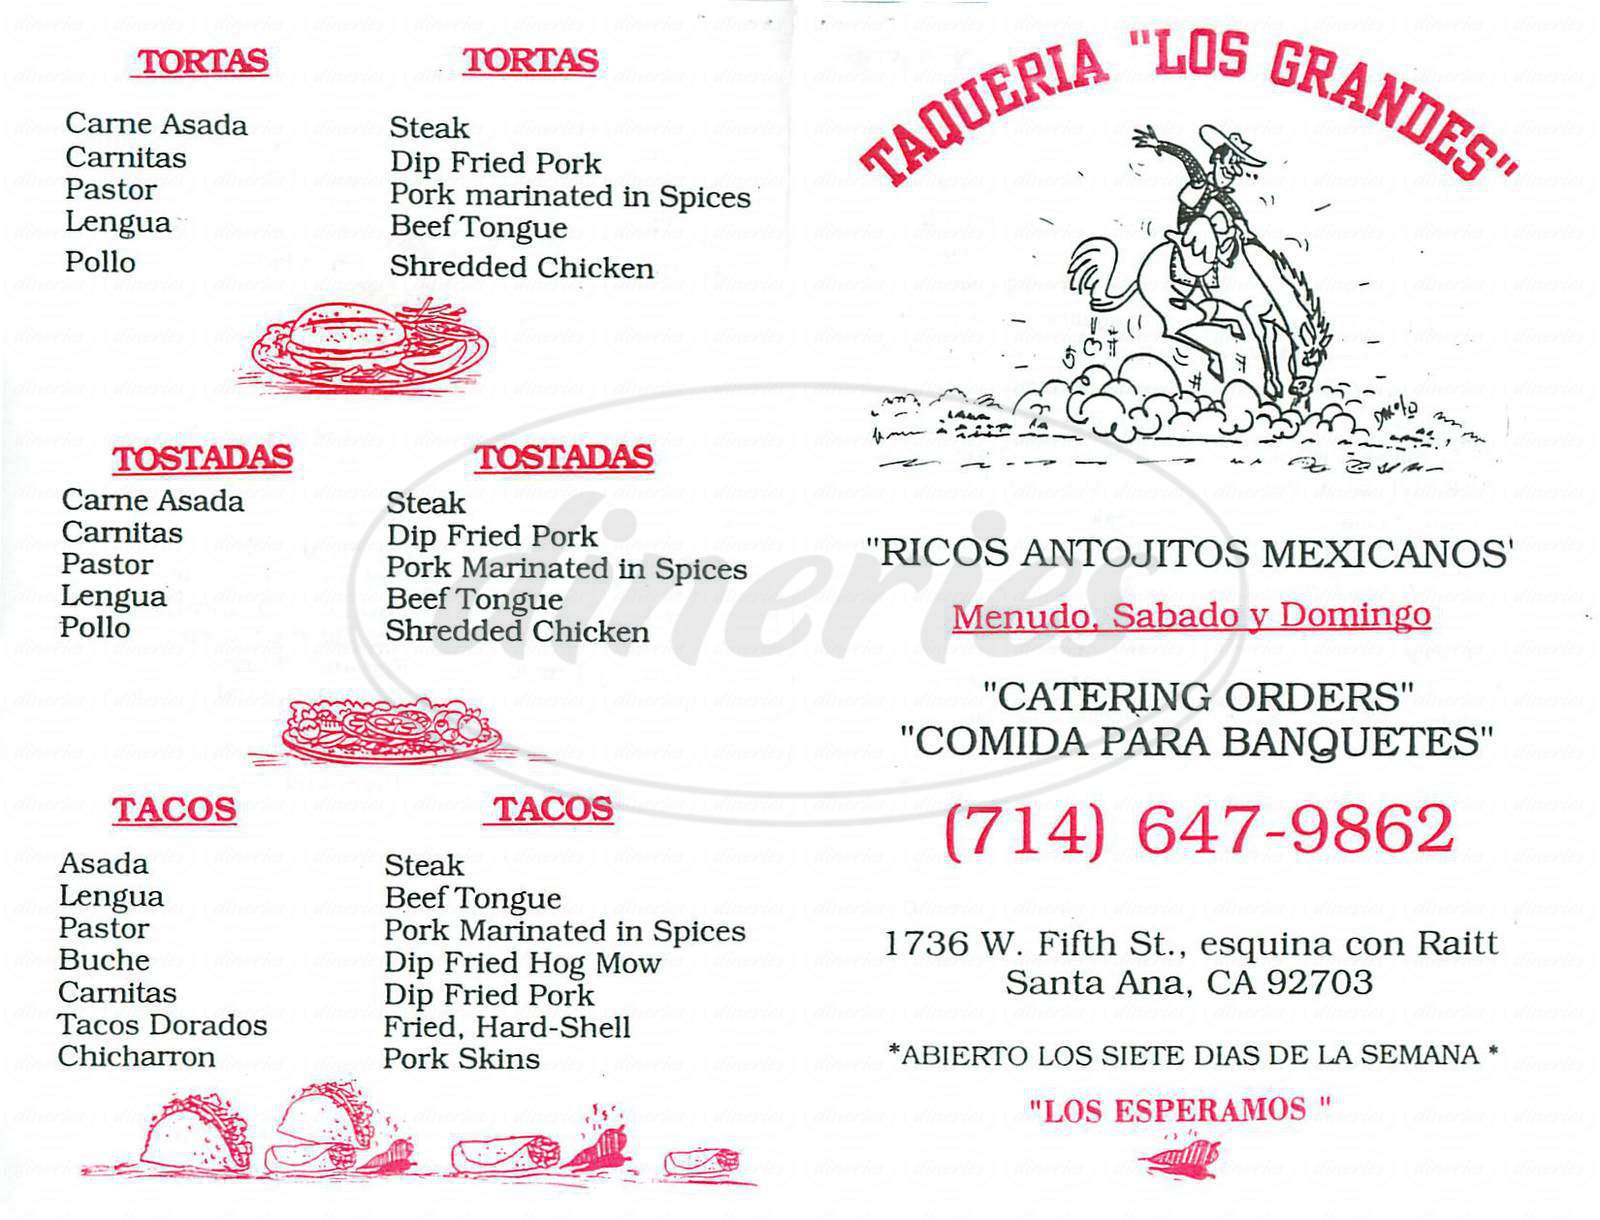 menu for Taqueria Los Grandes